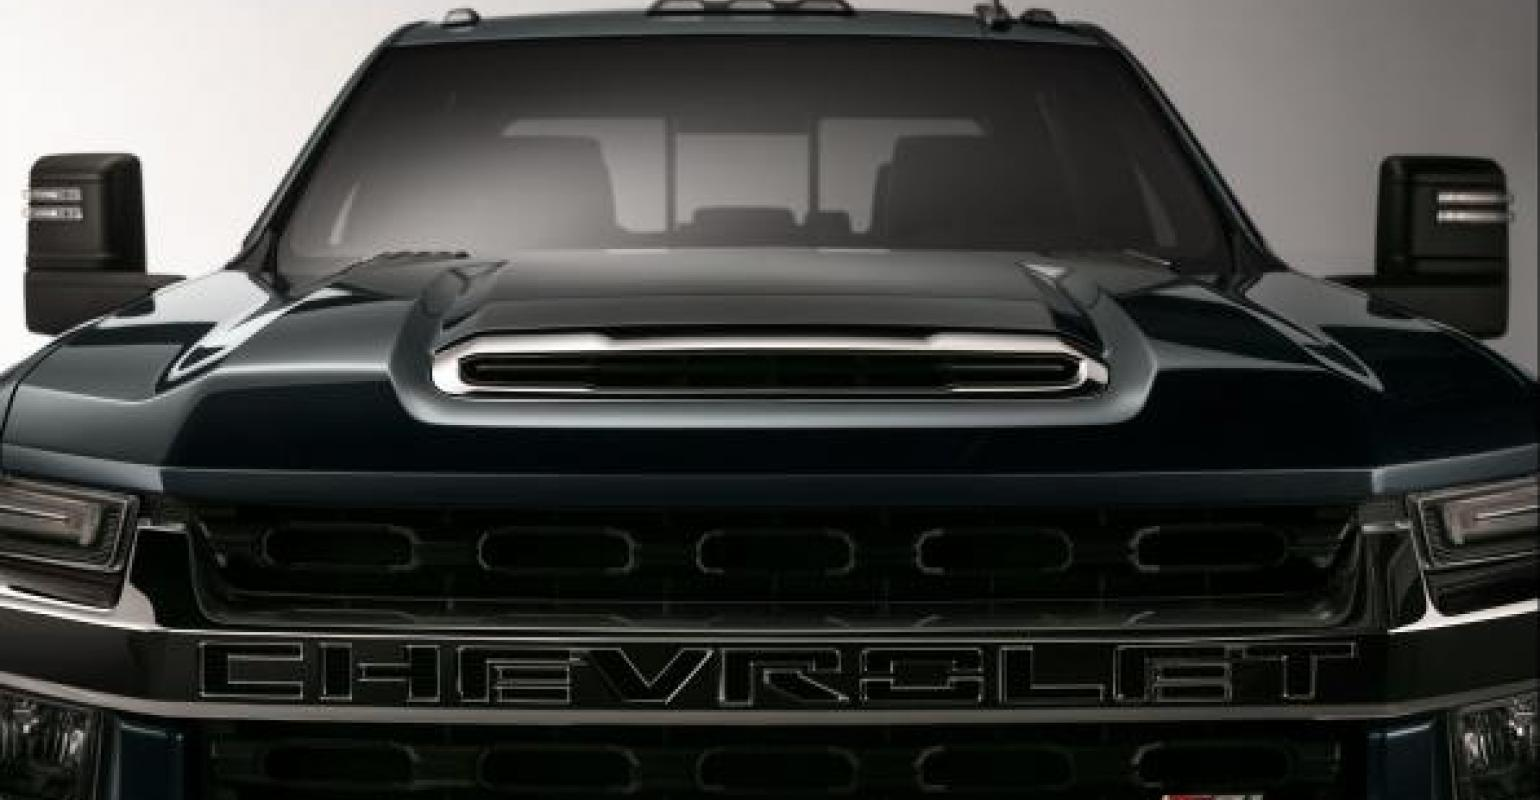 Chevy Gave Sneak Peek Of Silverado HD Pickup At Las Vegas Dealer And Media  Event